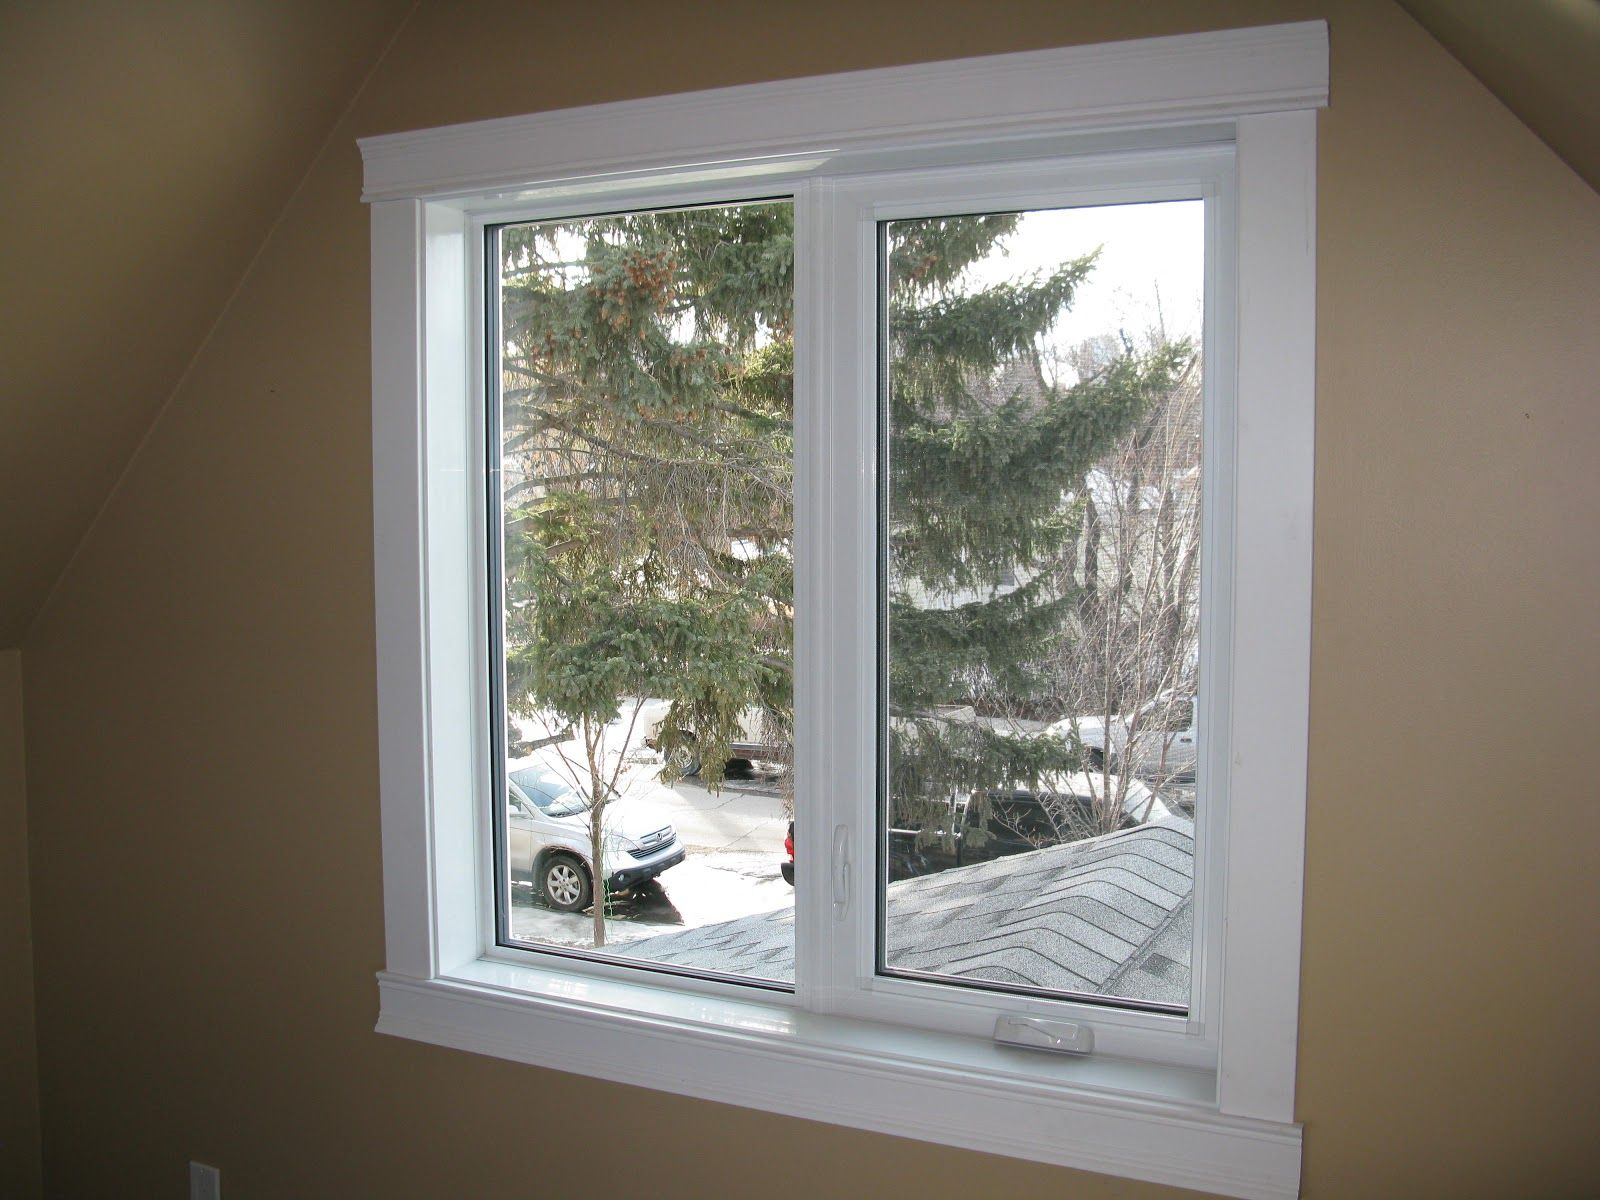 One Simple Way To Choose Interior Window Trim Is Match It The Home S Other Molding Ensure A Cohesive Look Windowtrim